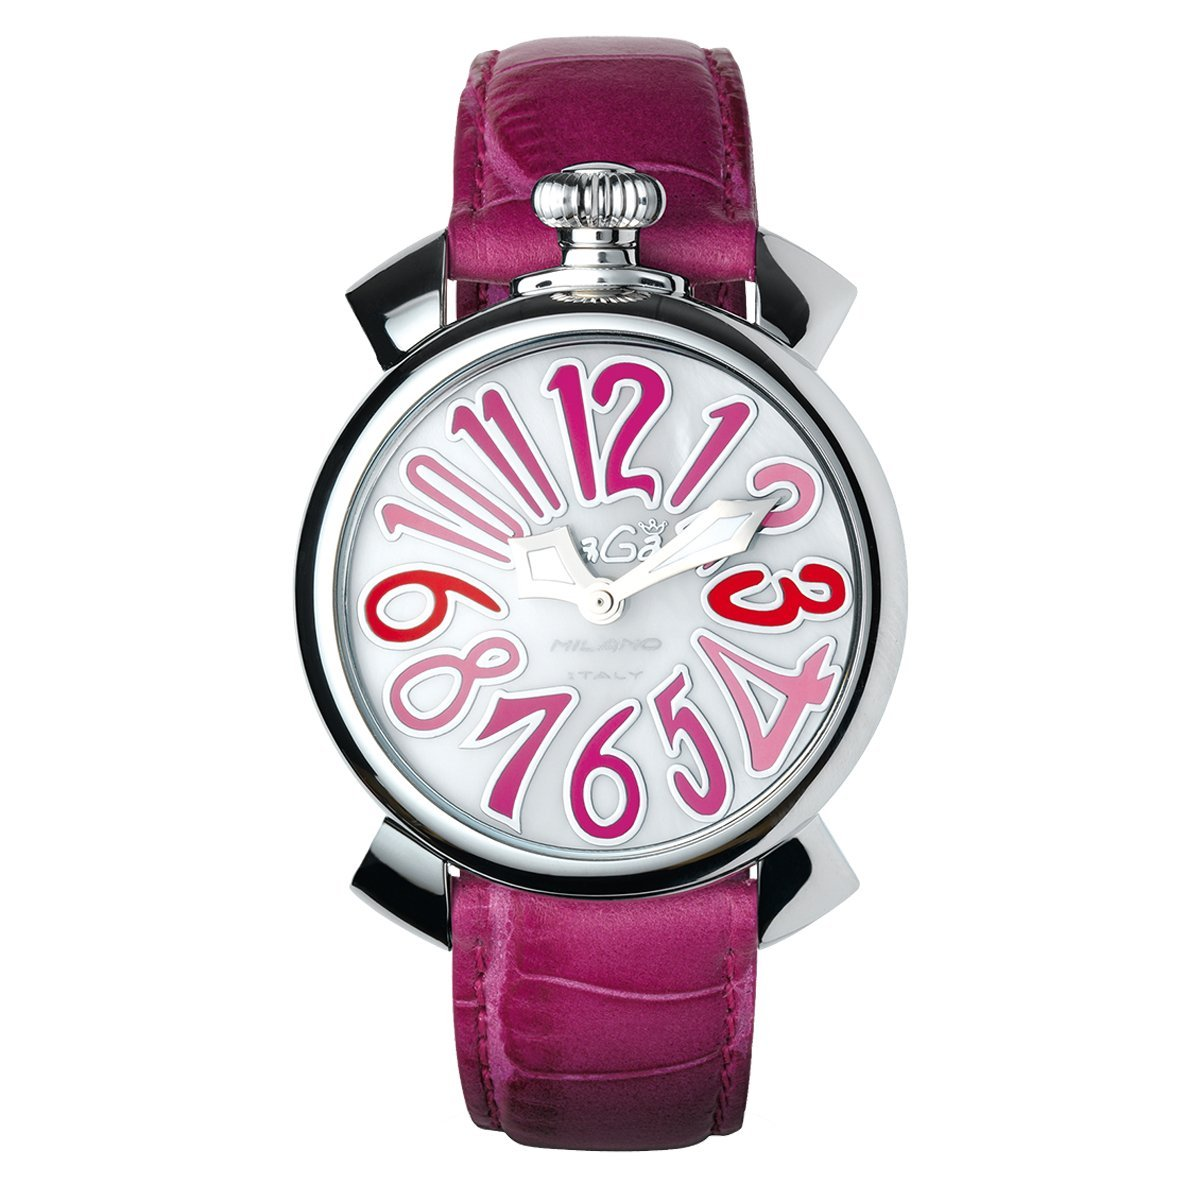 GaGà Milano Manuale 40MM Pink - Watches & Crystals